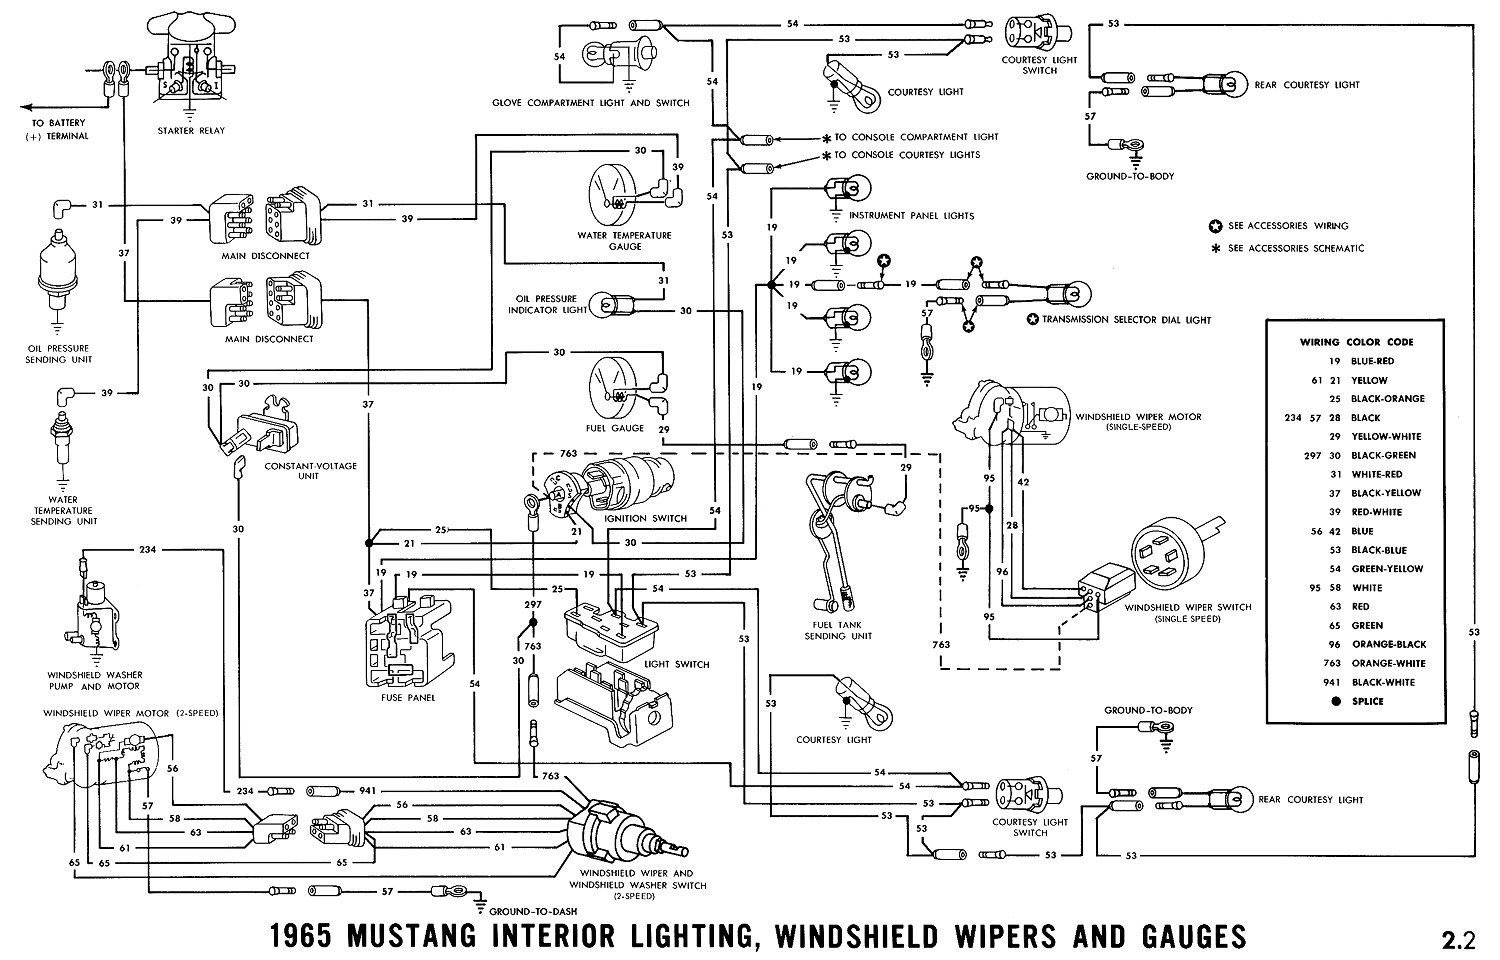 1965g 1965 mustang wiring diagrams average joe restoration 68 Mustang Fuse Block at mifinder.co